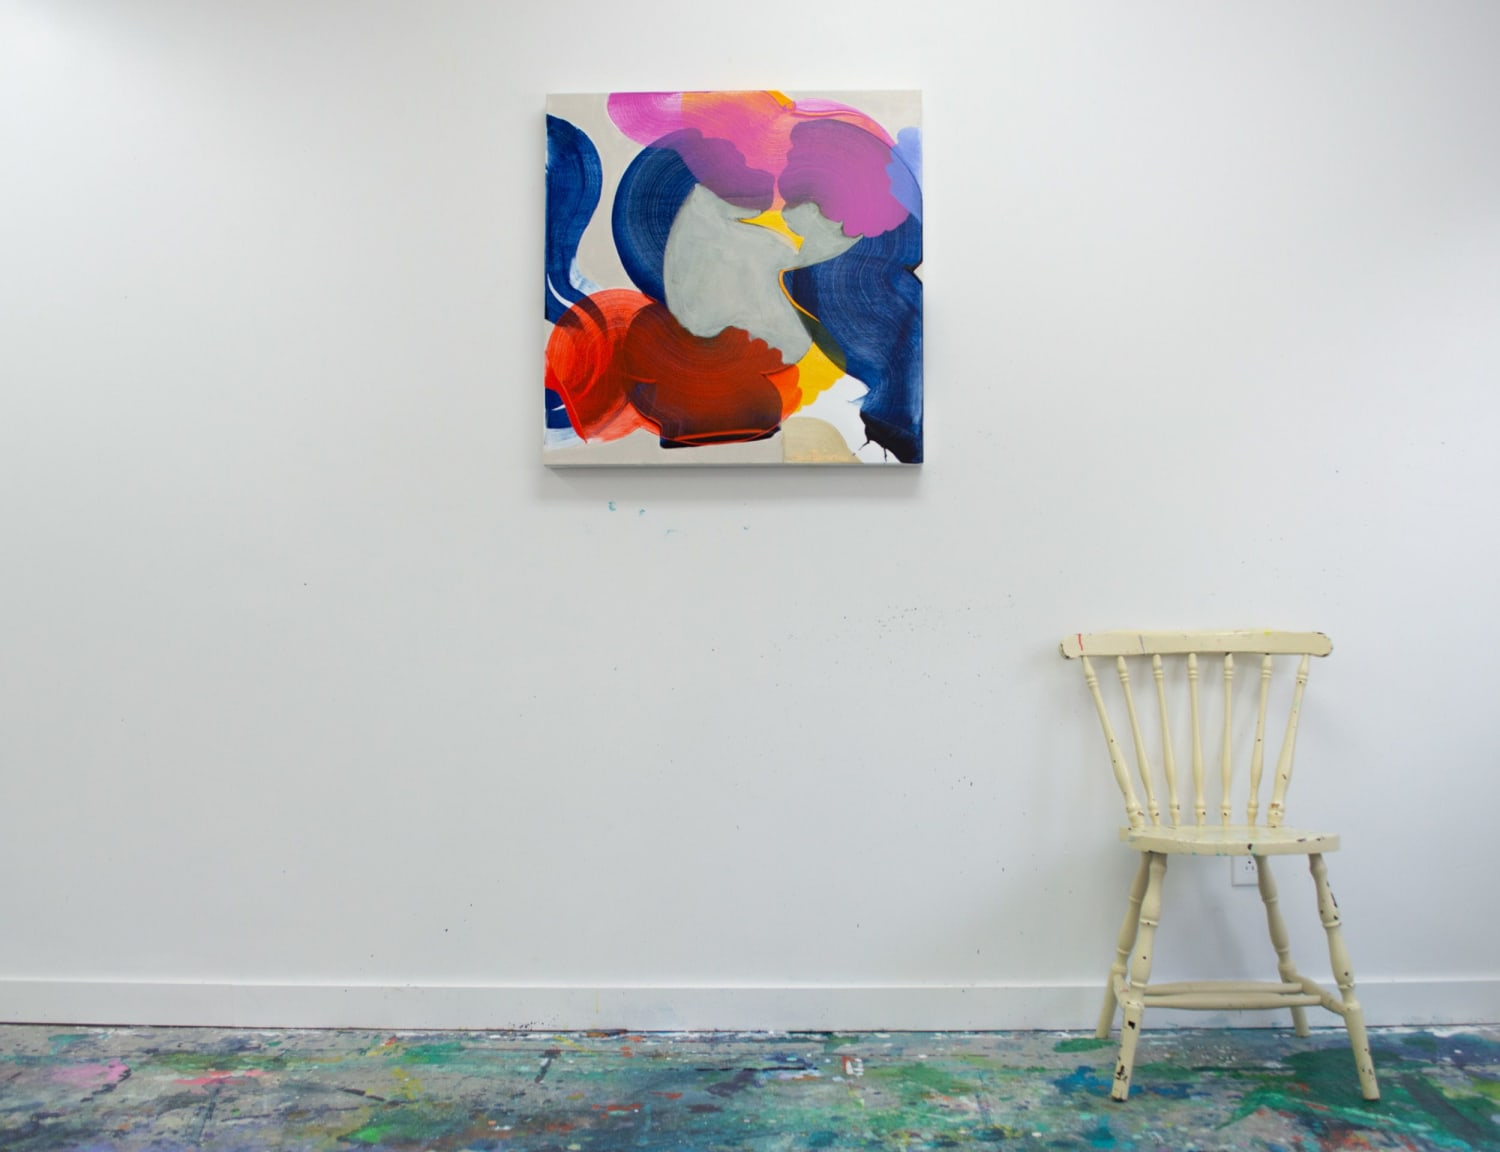 Pink, blue, and red abstract painting